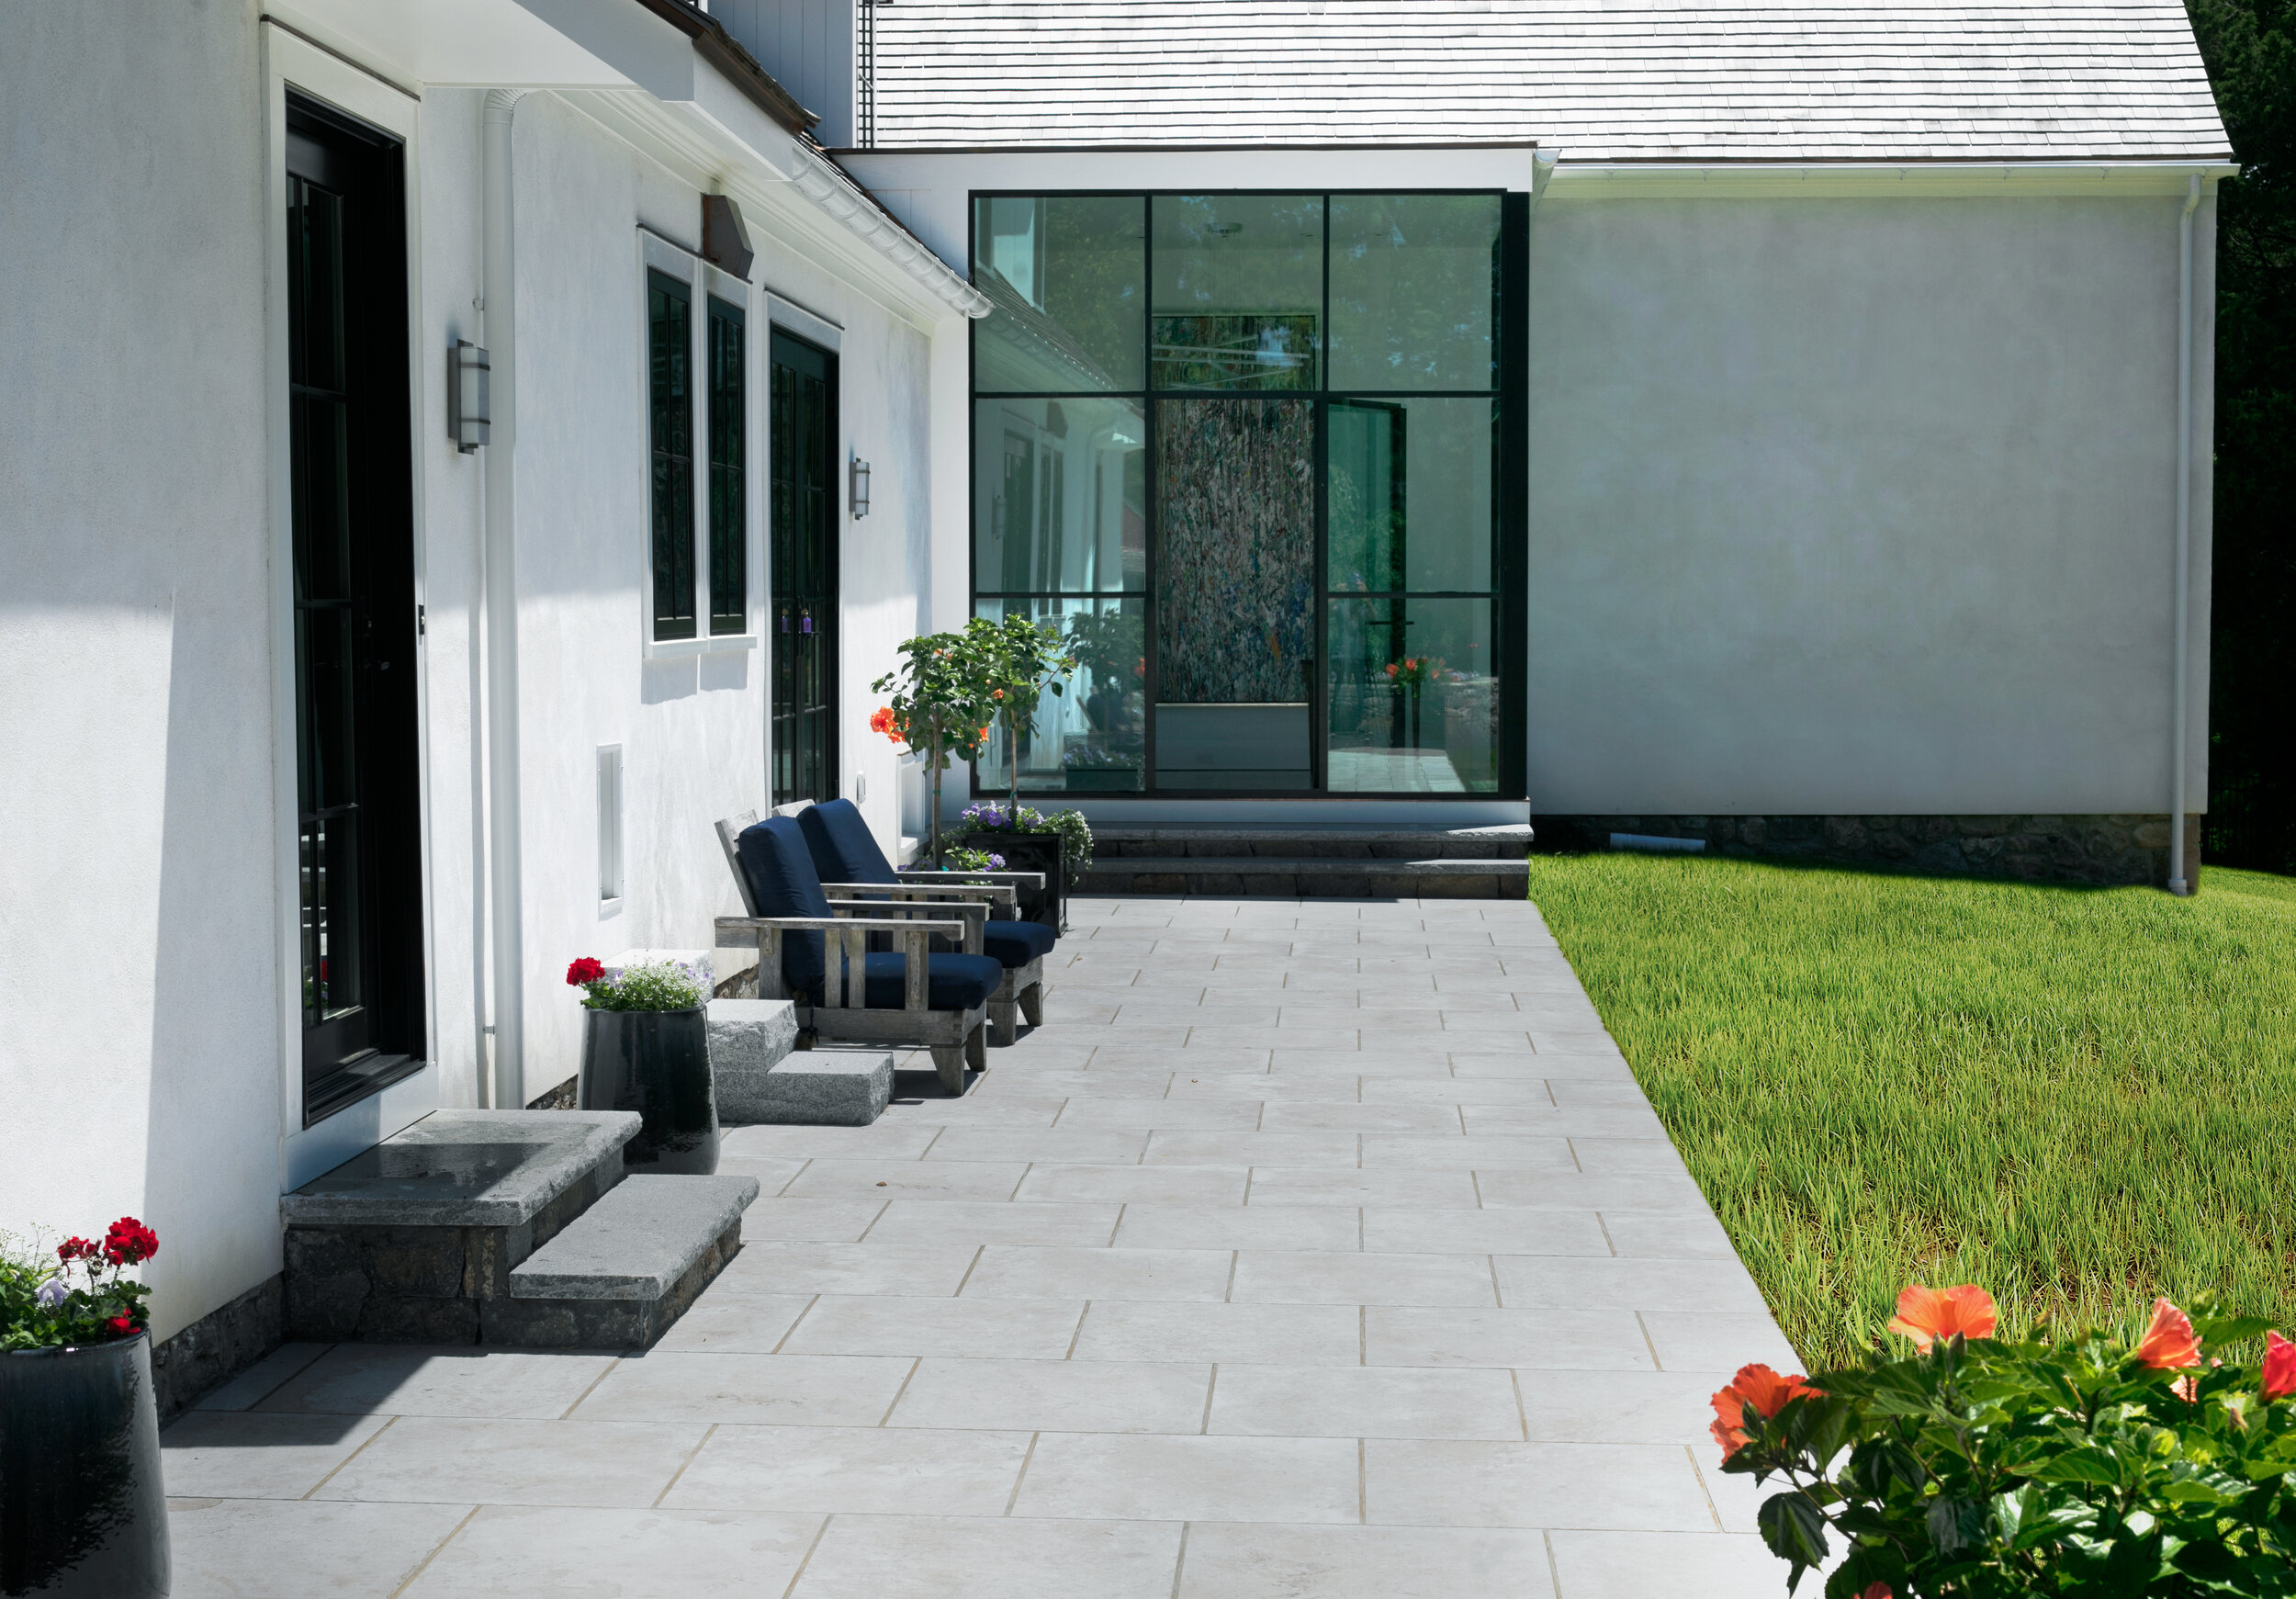 GS_Fairfield_Back_Patio_05.jpg